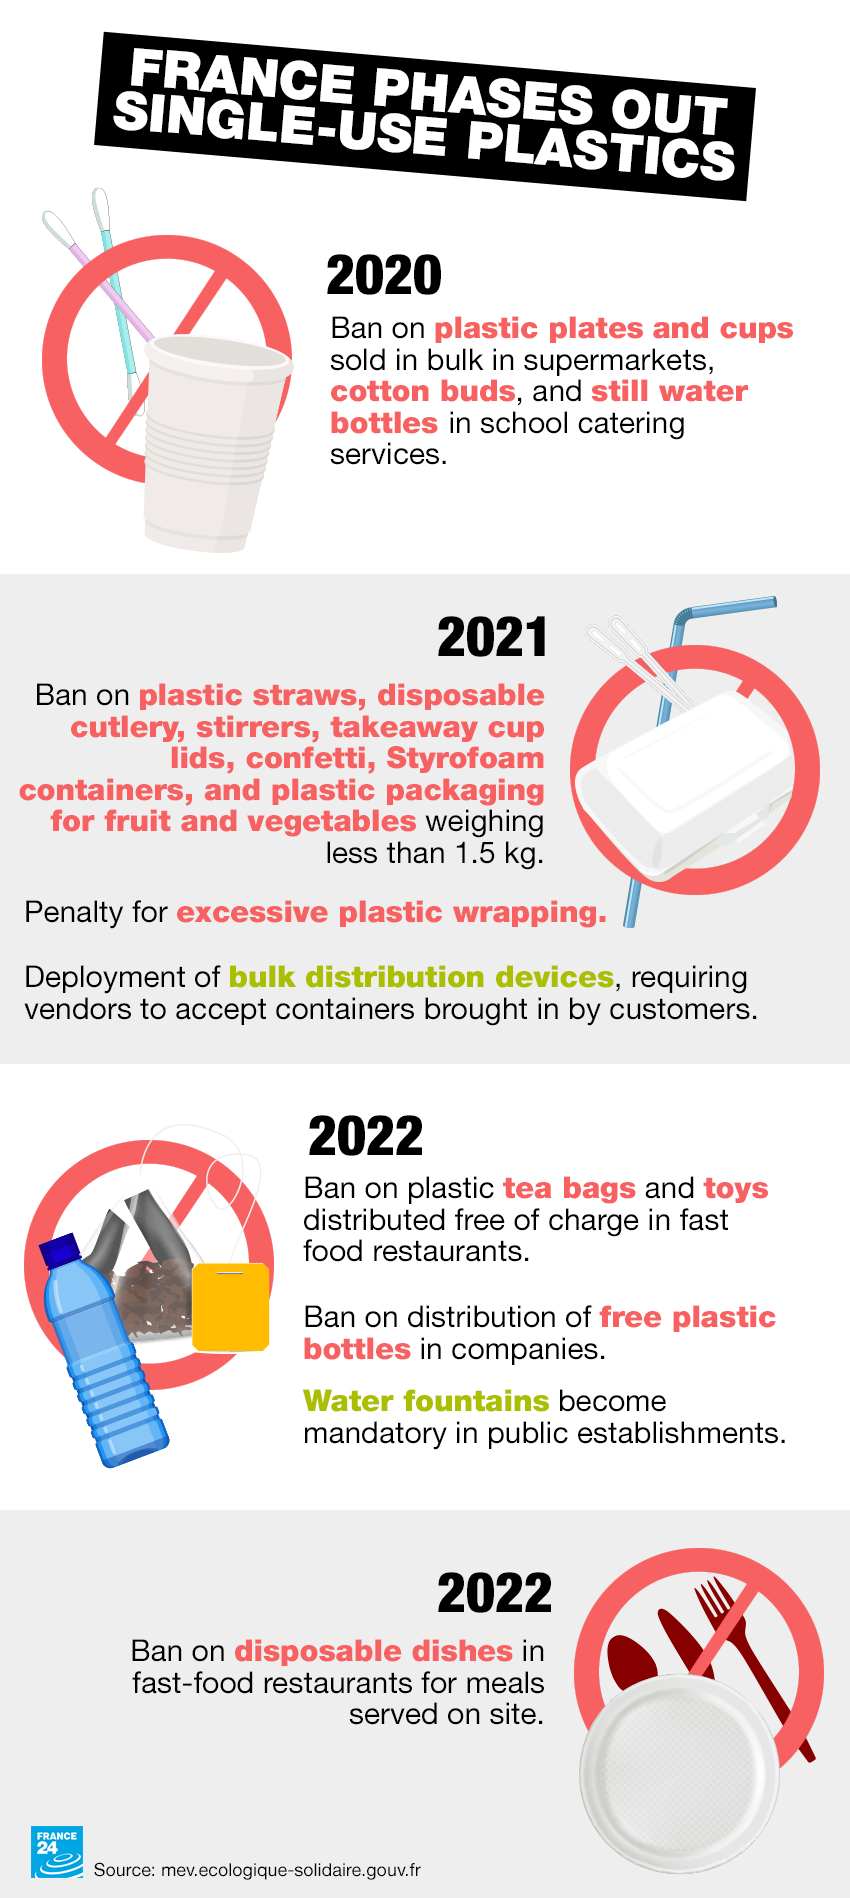 France will begin phasing out plastic products from 2020 in keeping with EU regulations.